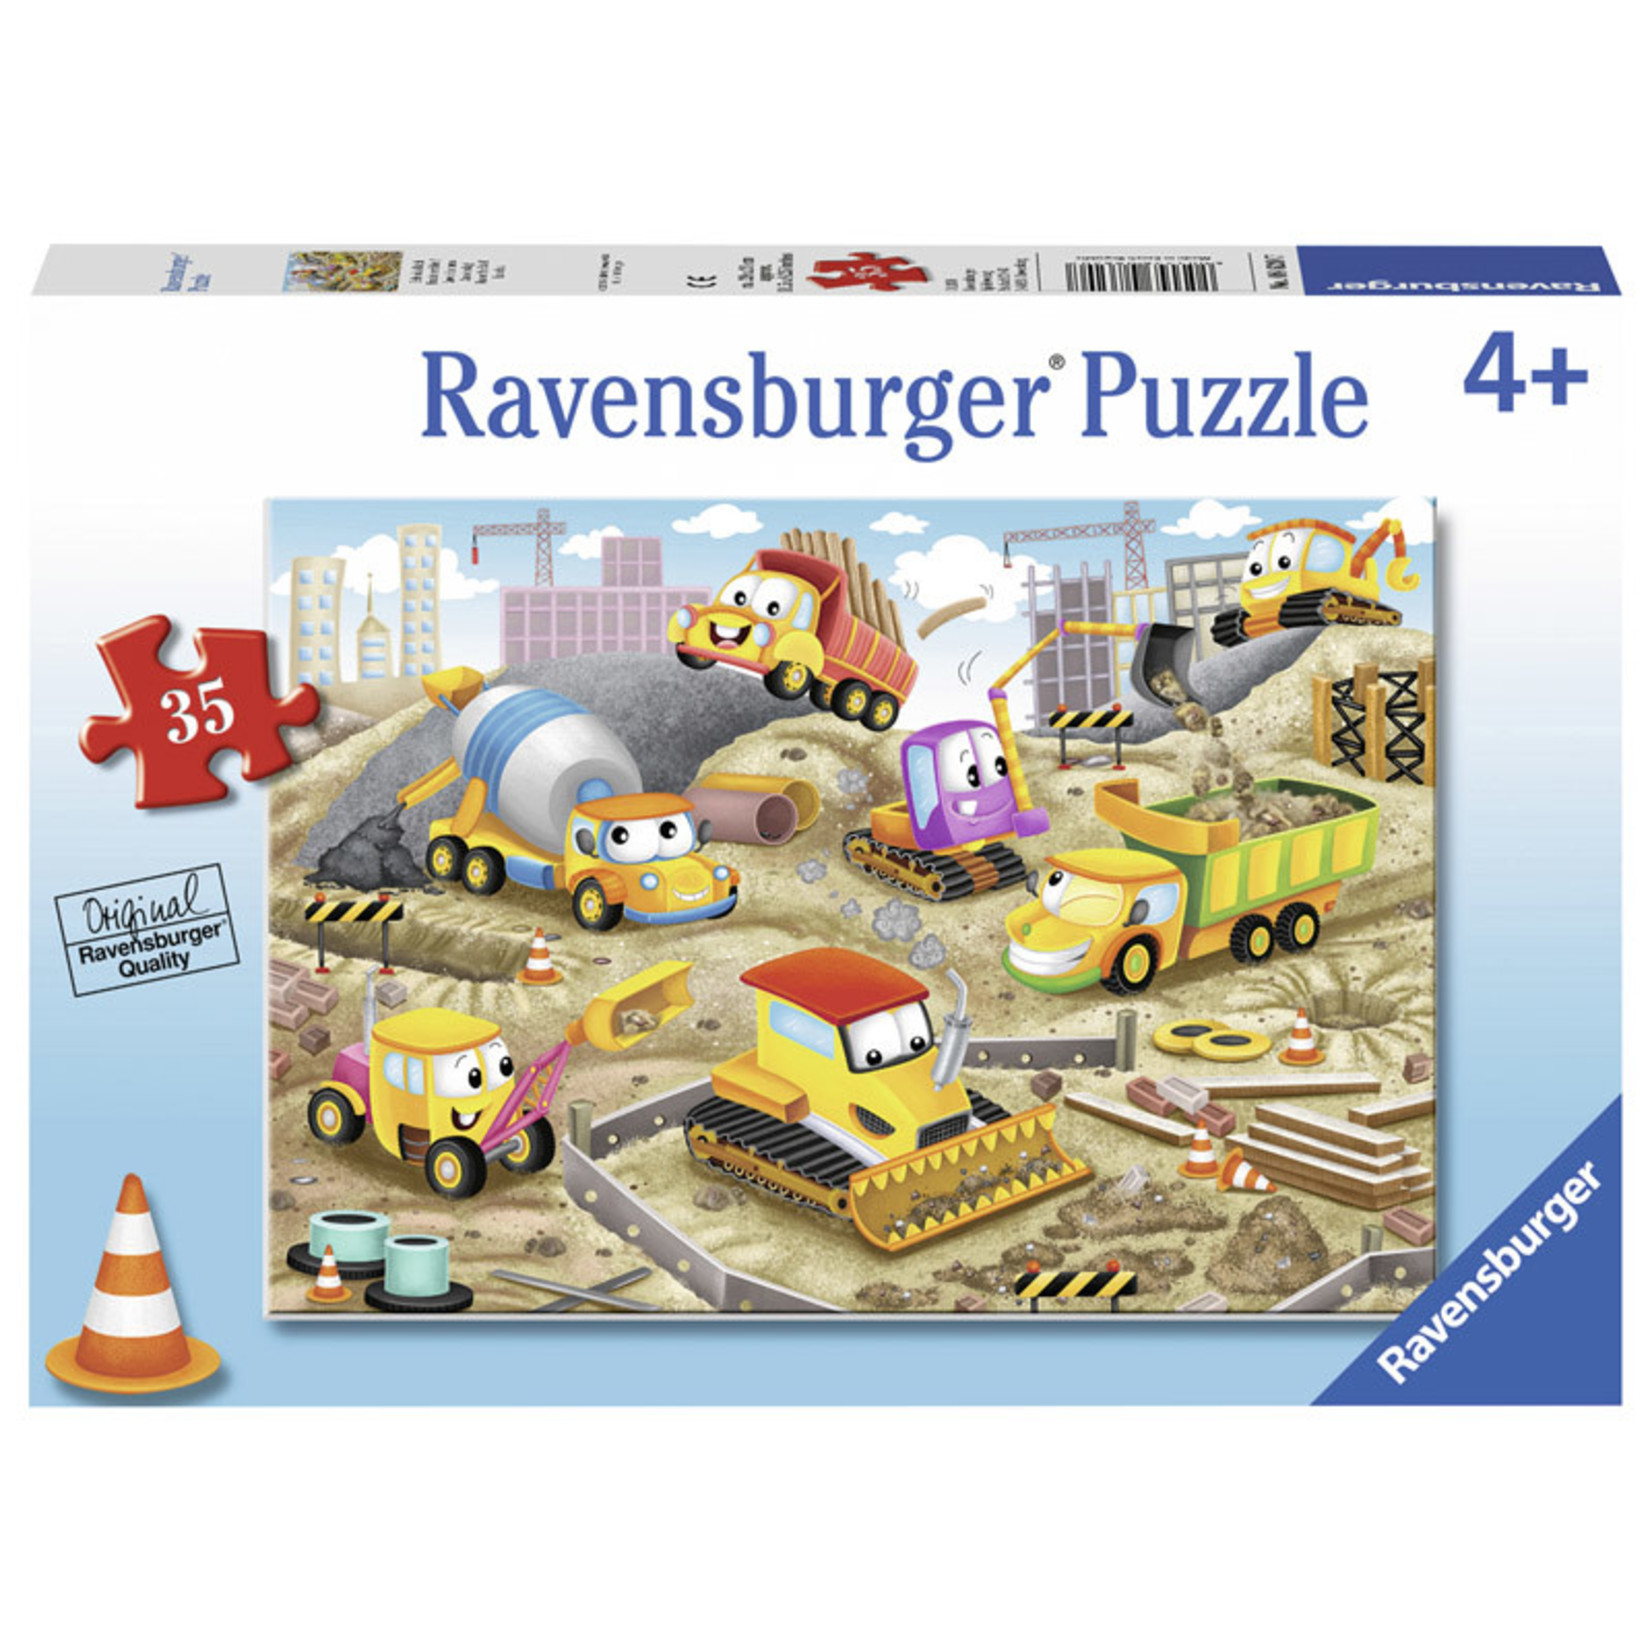 Ravensburger Raise the Roof 35pc